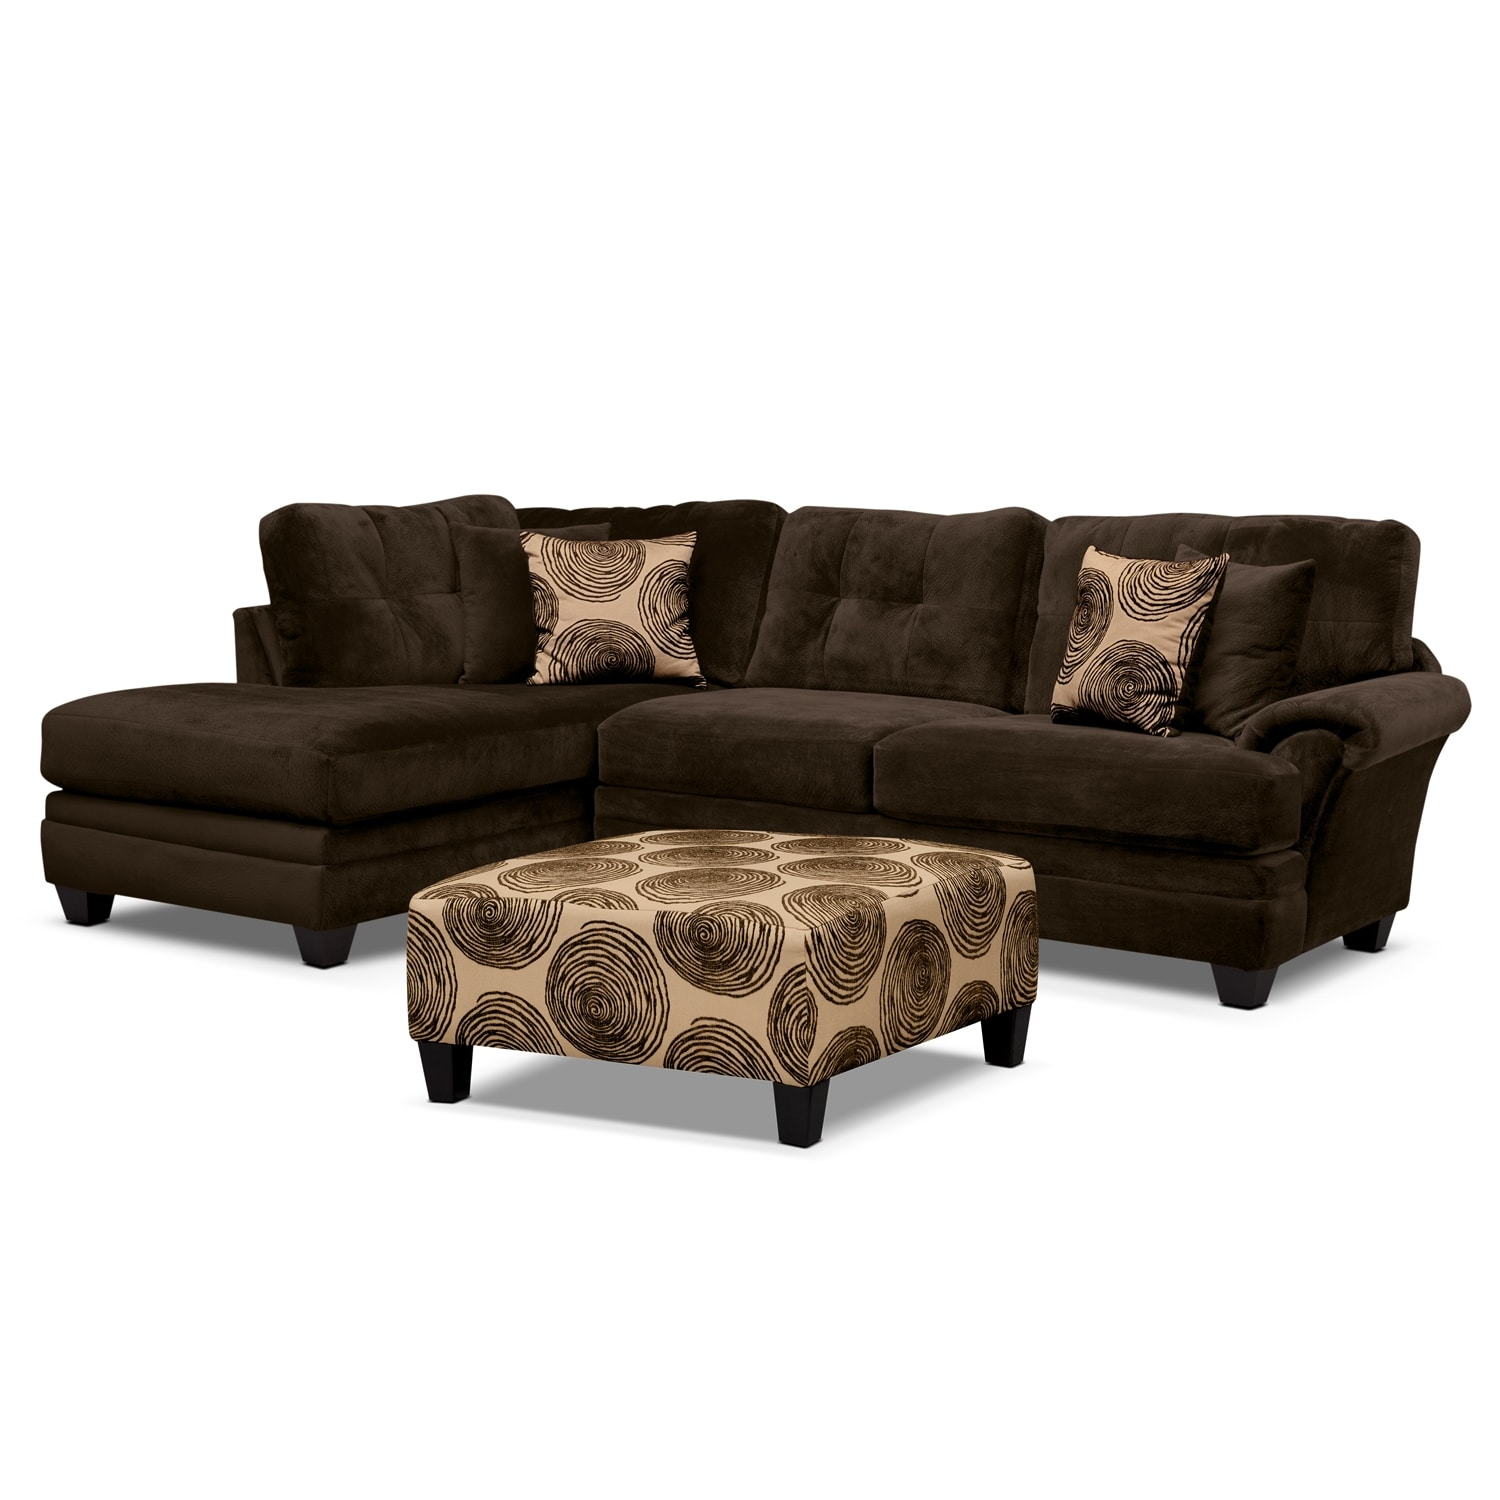 [Cordoba 2-Piece Left-Facing Sectional Plus Free Cocktail Ottoman - Chocolate]